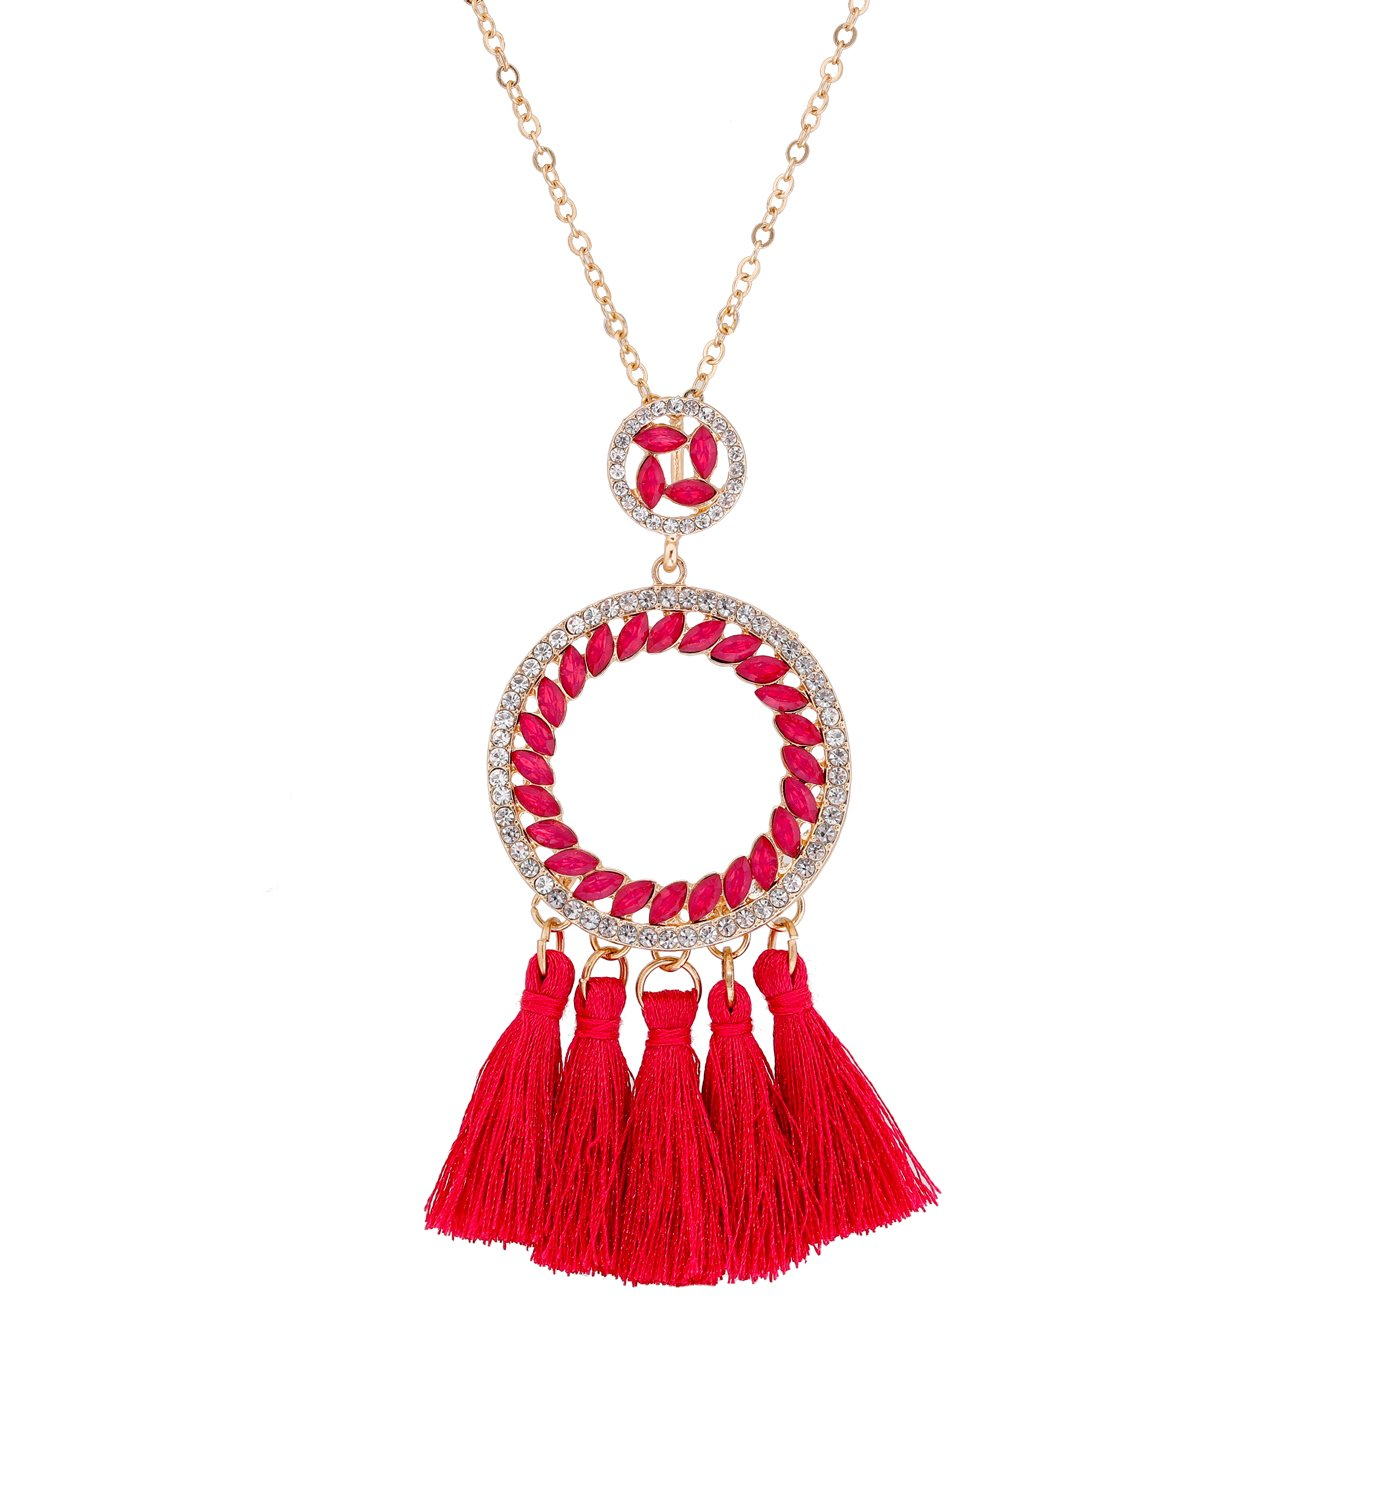 PHALIN JEWELRY Long Chain Necklace Crystal Circle Pendant Necklaces Delicate Bohemia Tassel Necklace for Women Girls